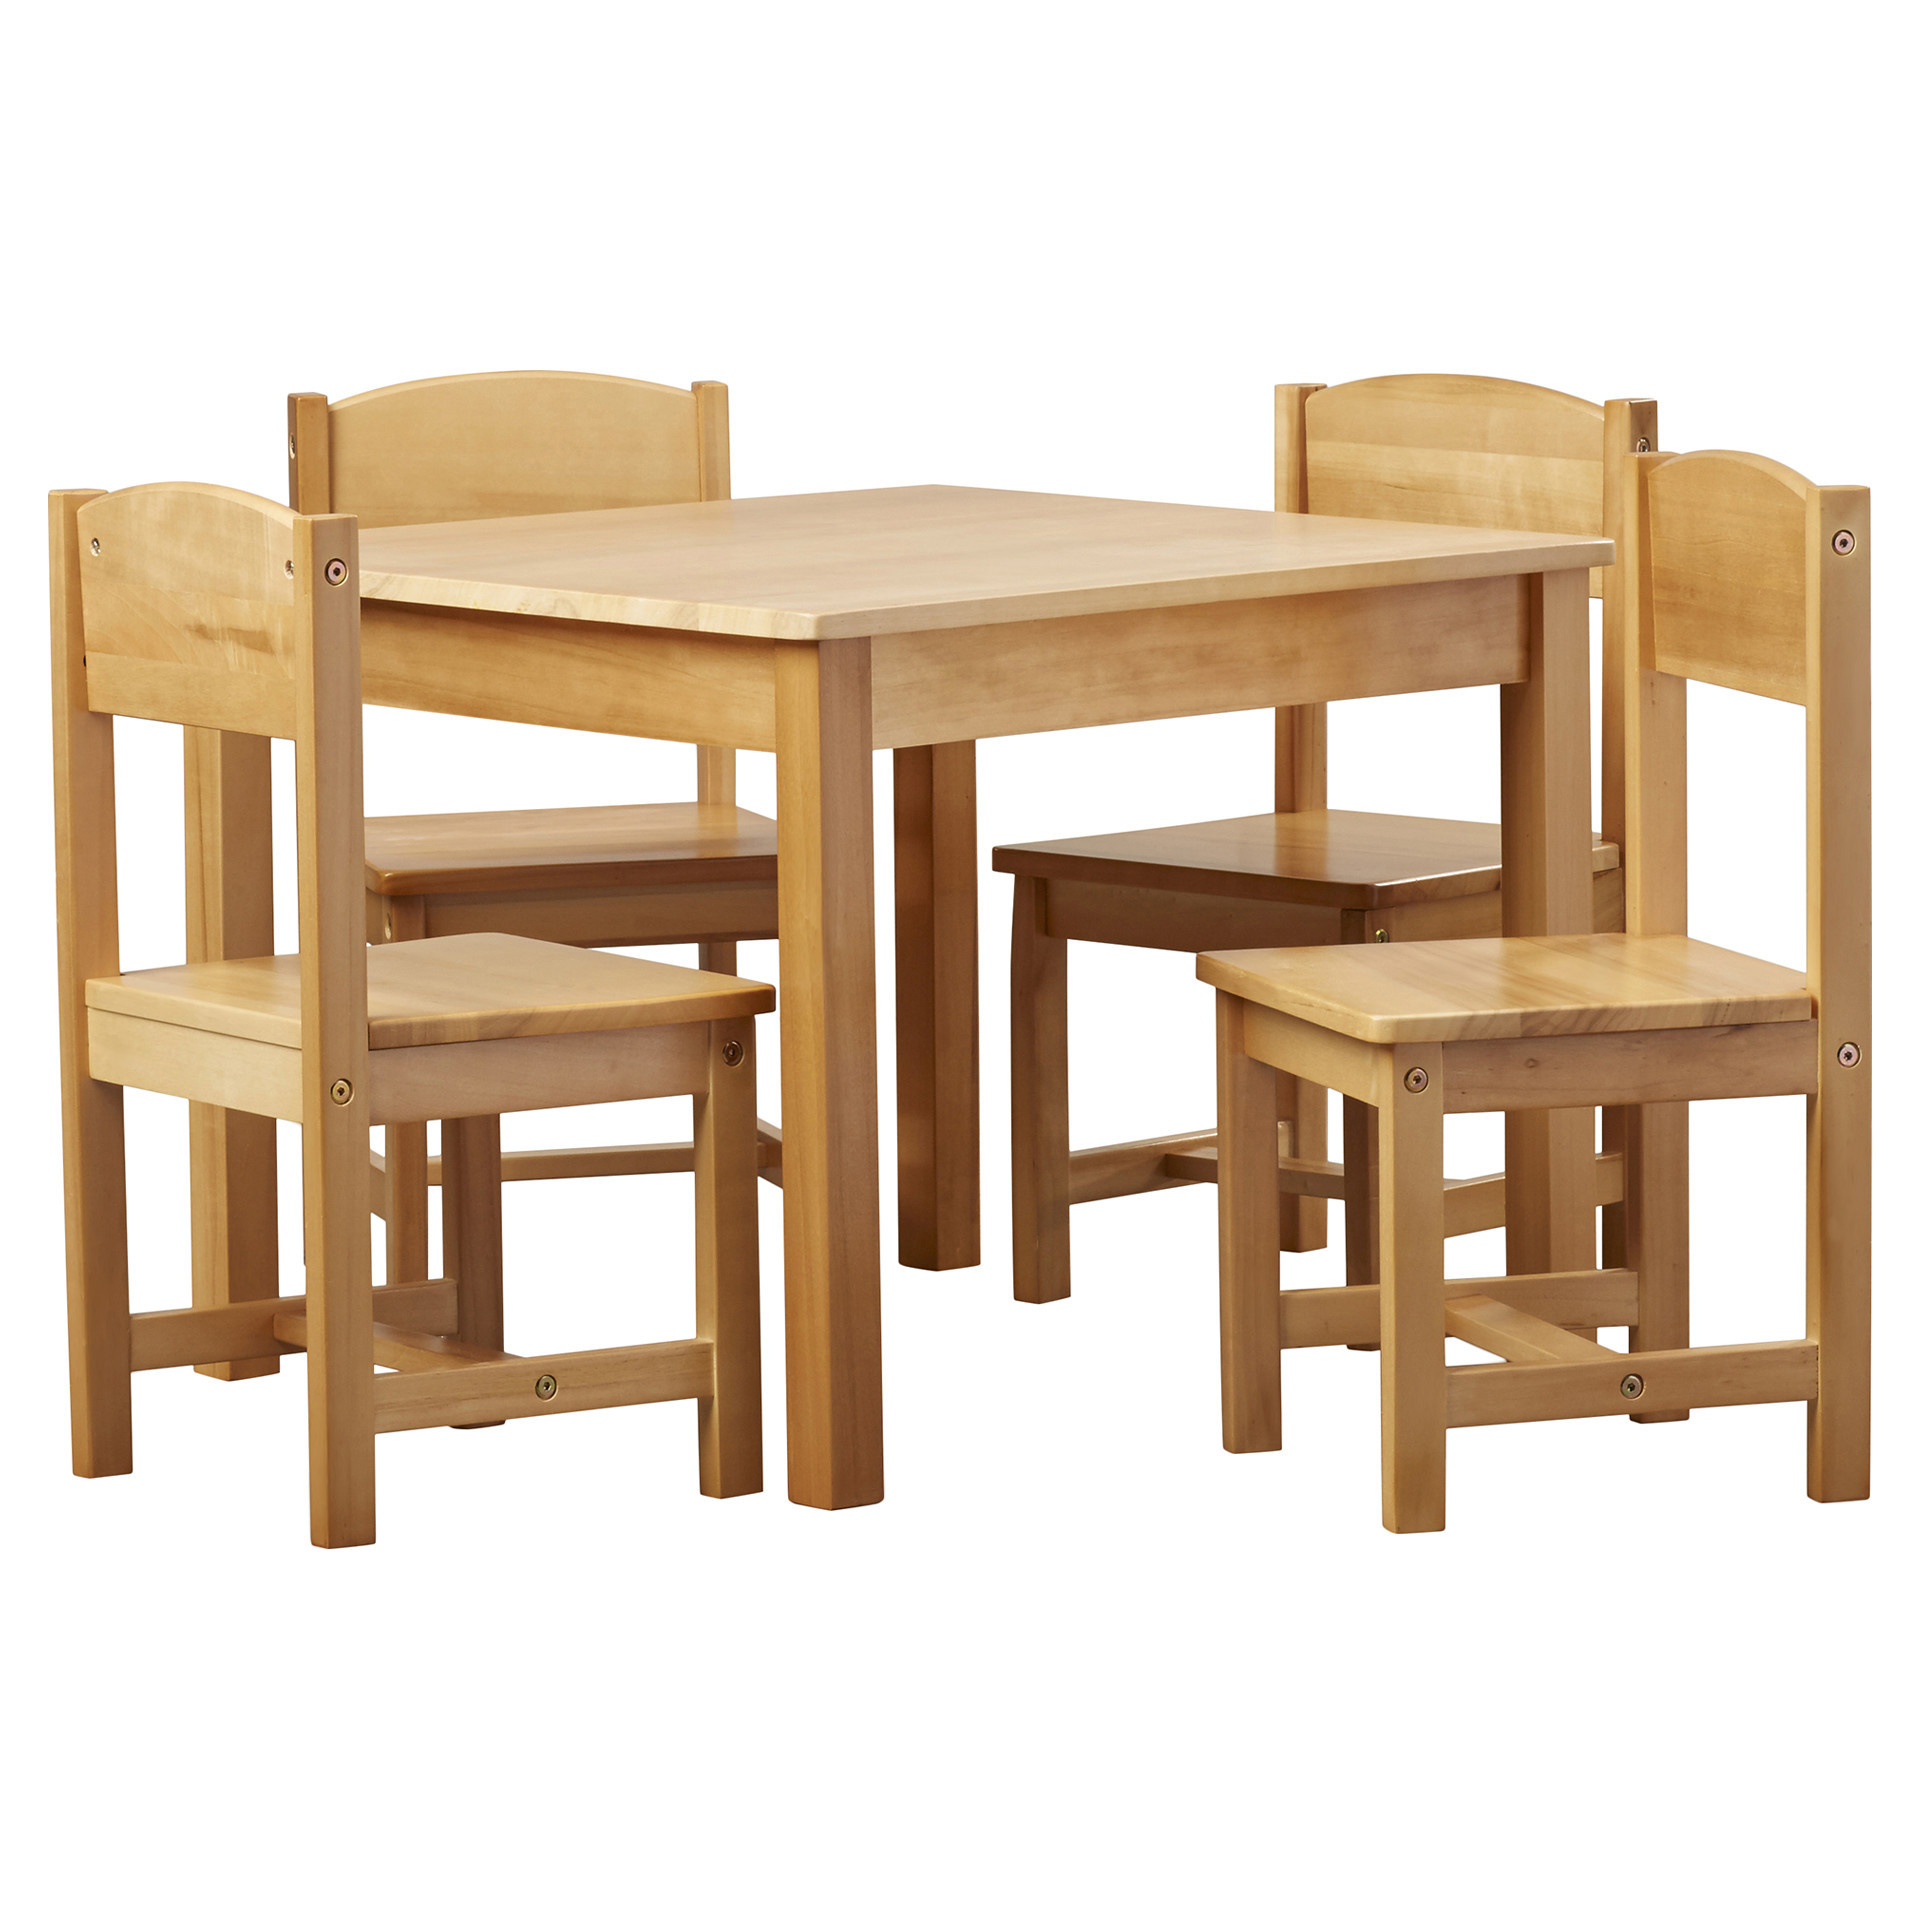 Best ideas about Table And Chair Set . Save or Pin KidKraft Farmhouse Kids 5 Piece Square Table and Chair Set Now.